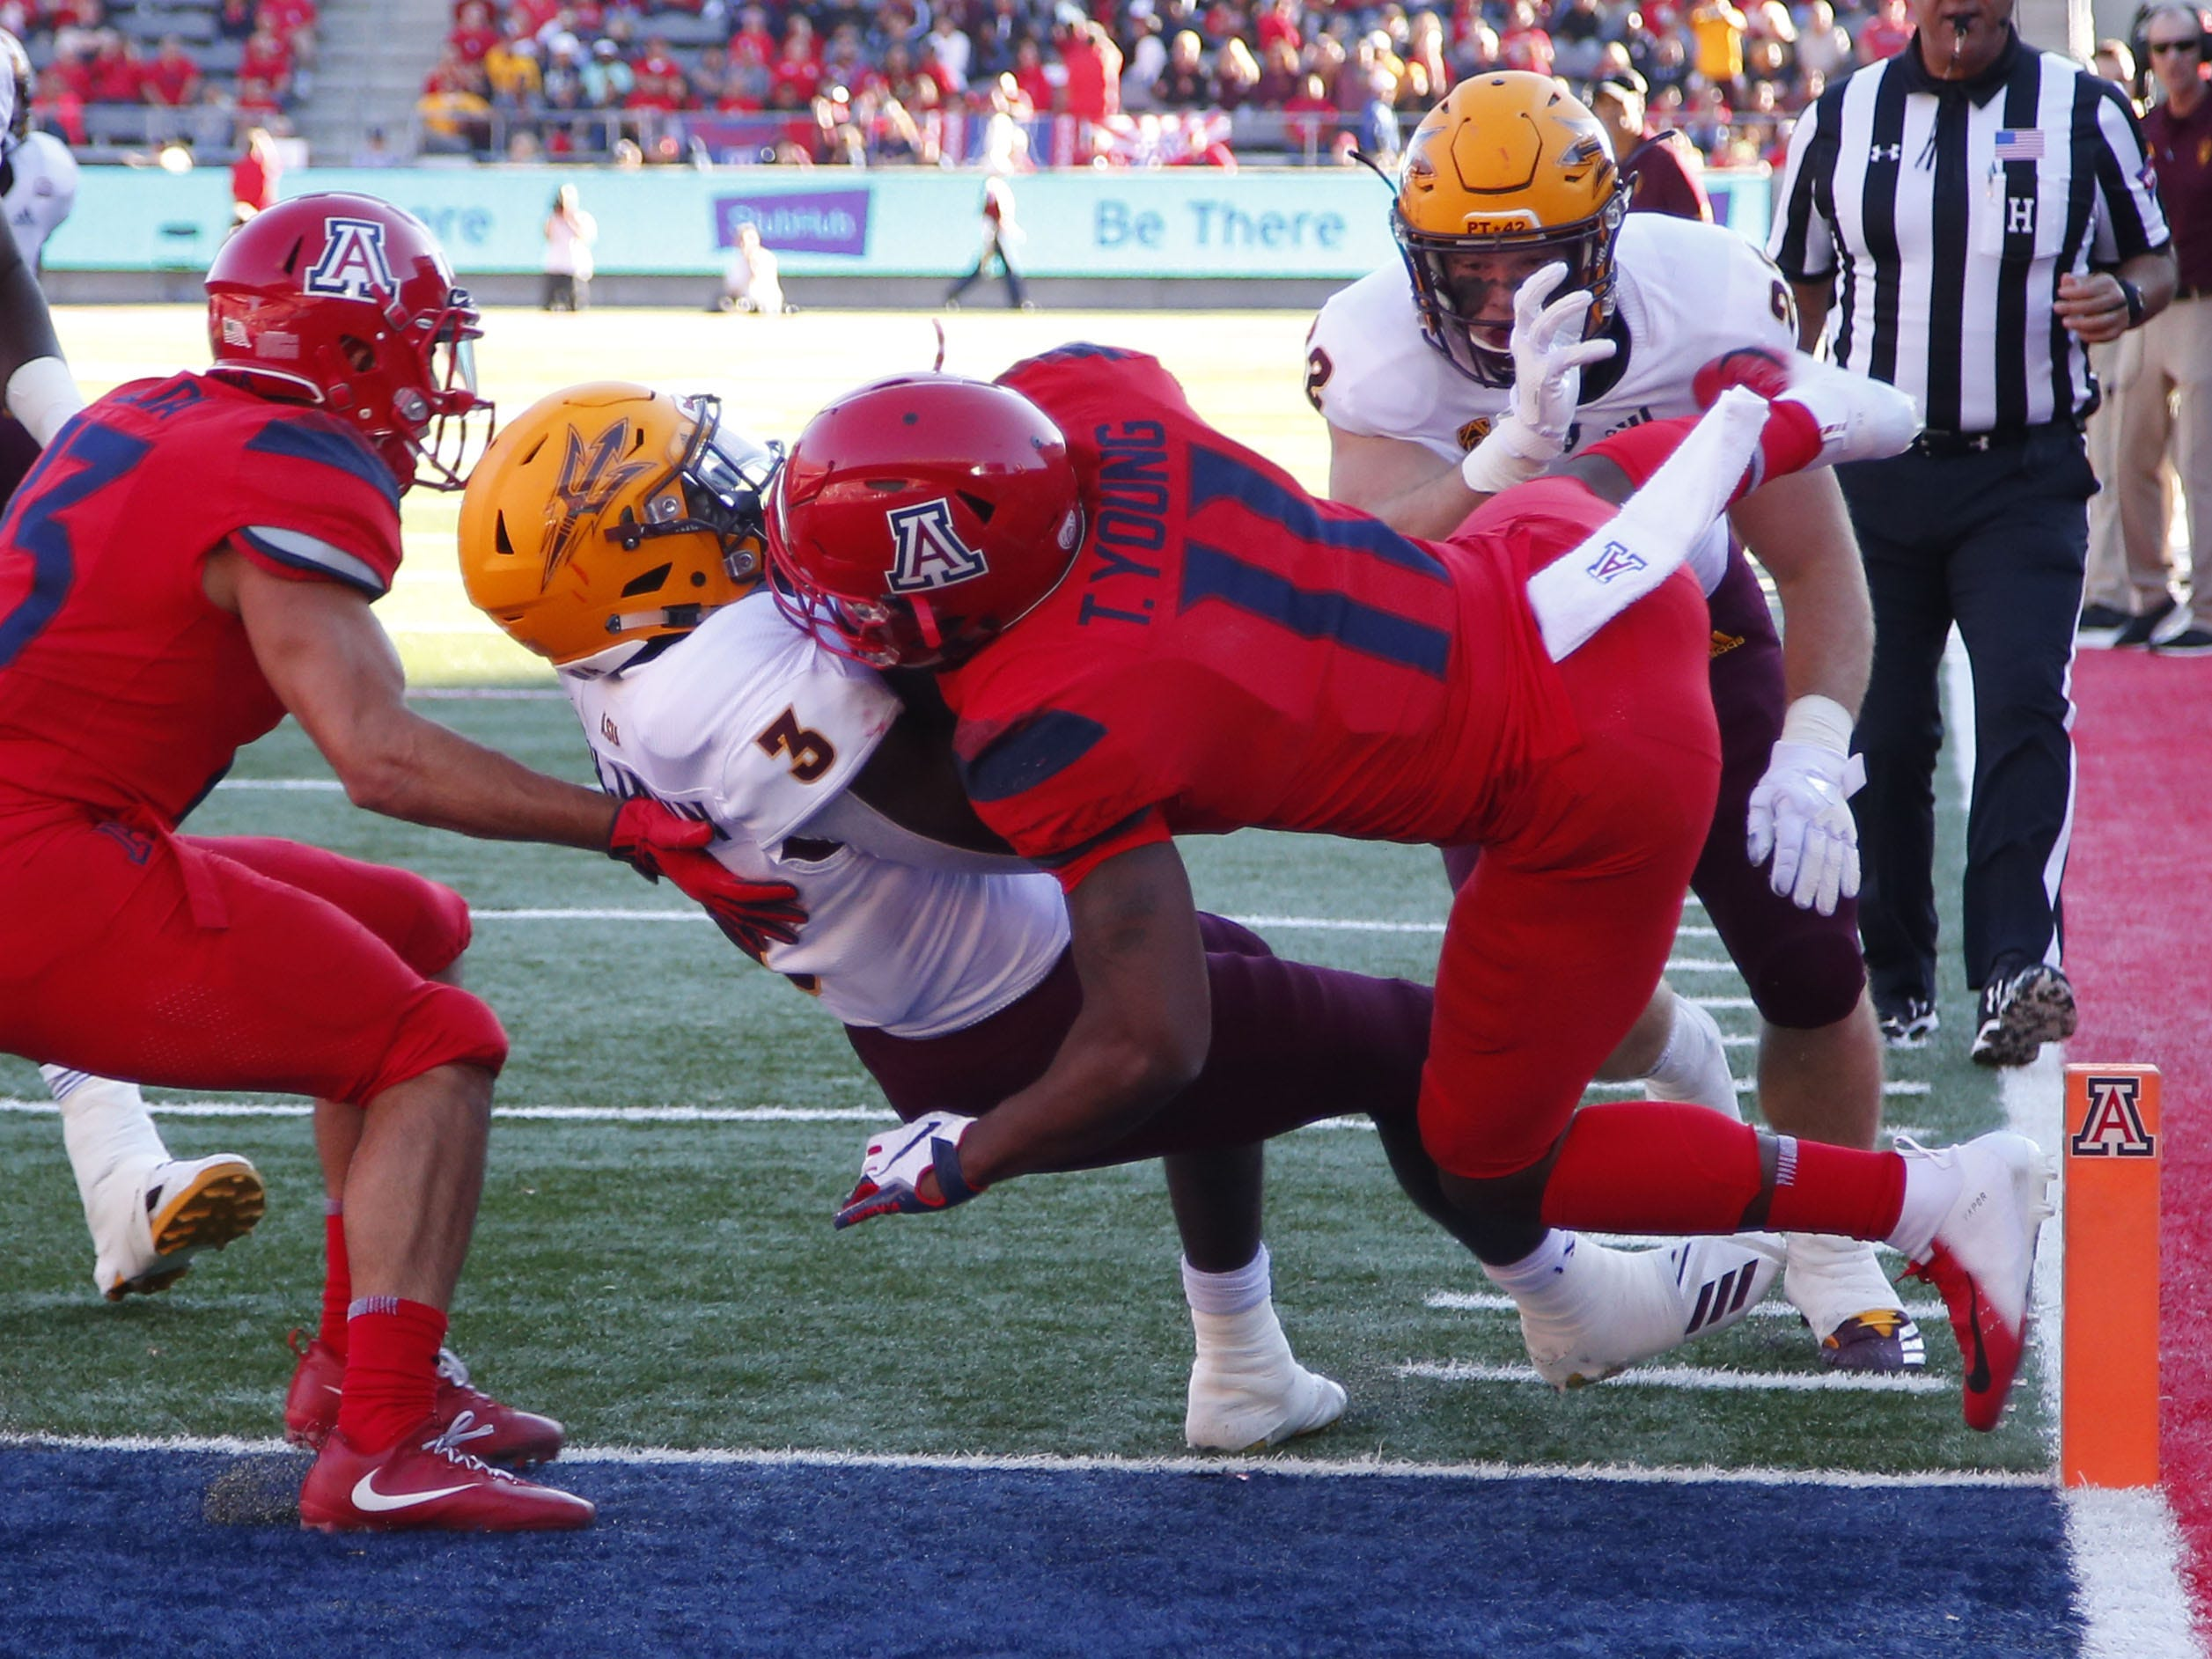 Arizona Wildcats safety Troy Young (11) can not stop Arizona State Sun Devils running back Eno Benjamin (3) from scoring a touchdown during the Territorial Cup football game at Arizona Stadium in Tucson on November 24.